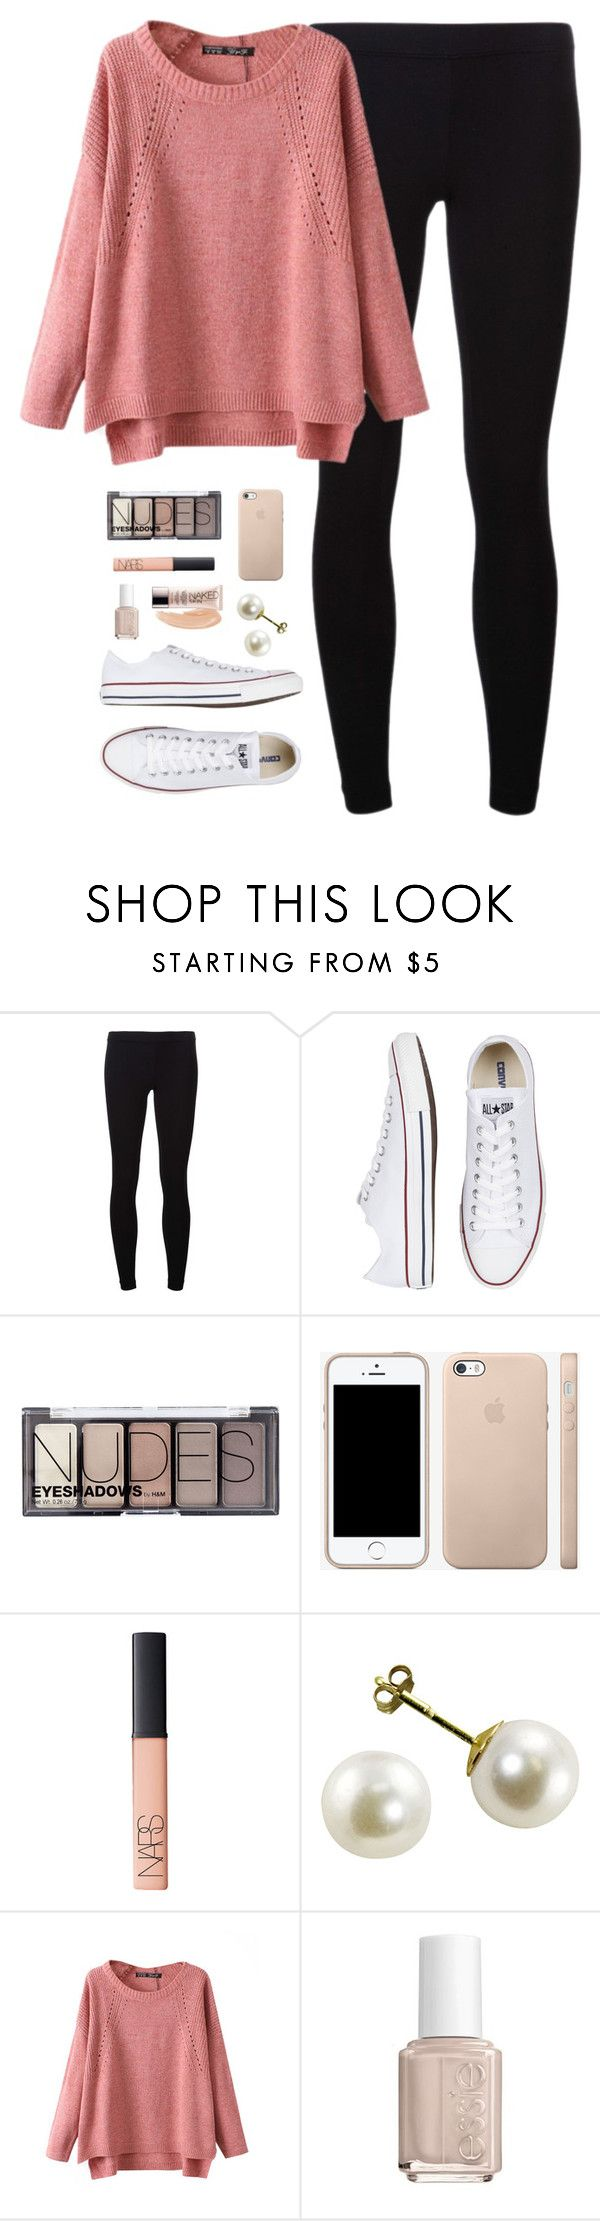 """ootd"" by classically-preppy ❤ liked on Polyvore featuring James Perse, Converse, H&M, NARS Cosmetics, Chicnova Fashion, Essie and Urban Decay"